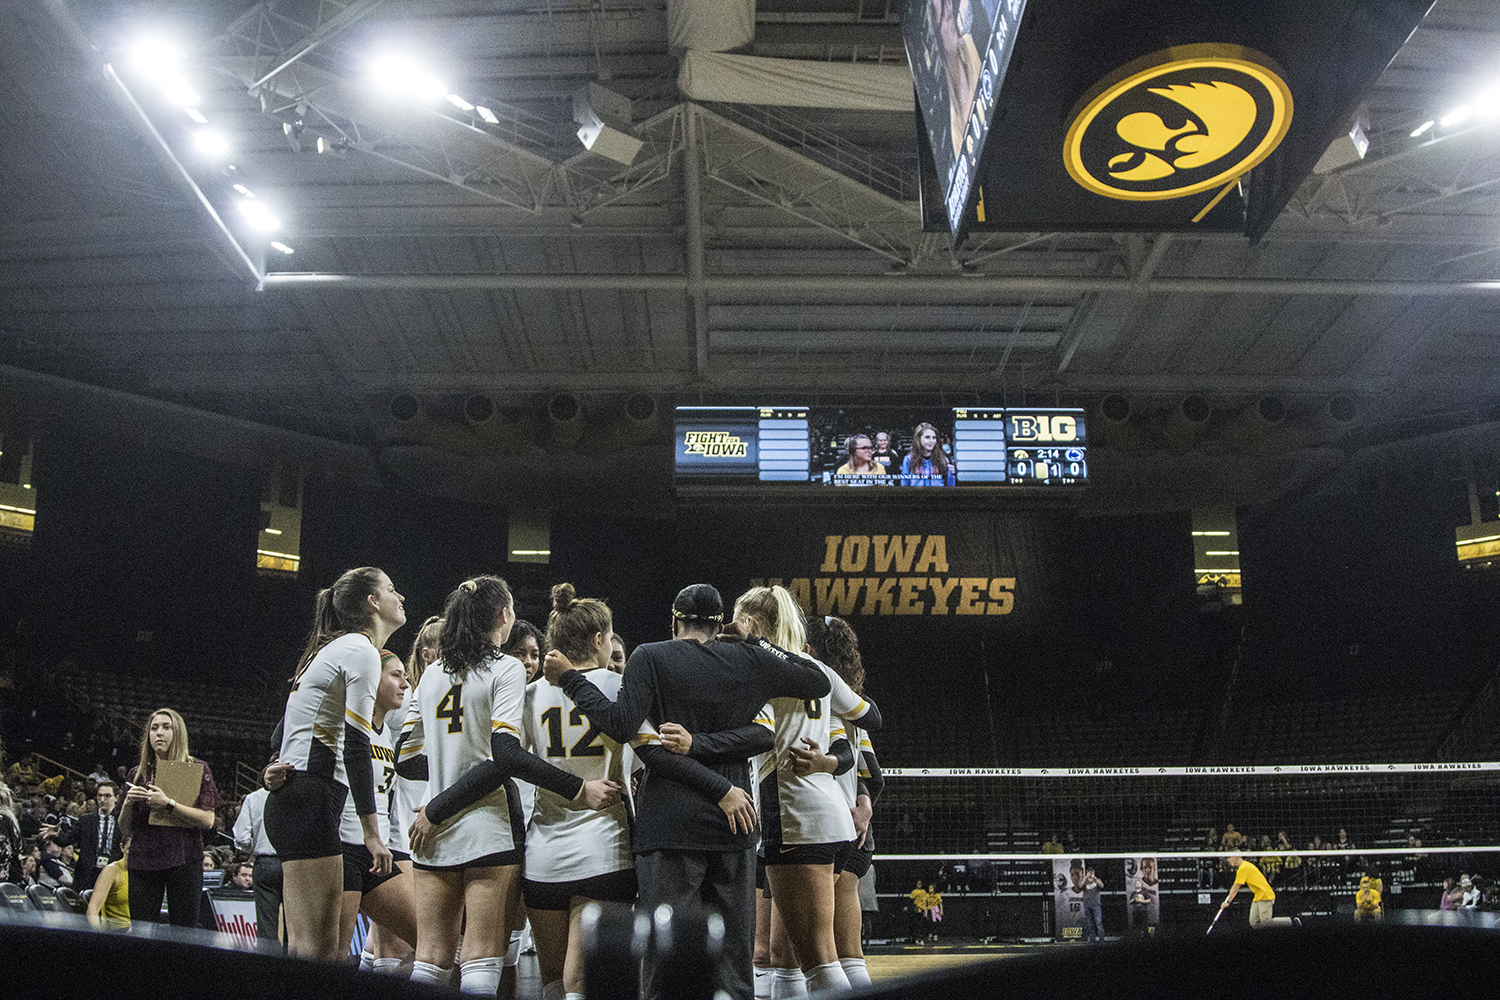 Iowa+players+huddle+during+a+volleyball+match+between+Iowa+and+Penn+State+at+Carver-Hawkeye+Arena+on+Saturday%2C+Nov.+3%2C+2018.+The+Hawkeyes+were+shut+out+by+the+Nittany+Lions%2C+3-0.